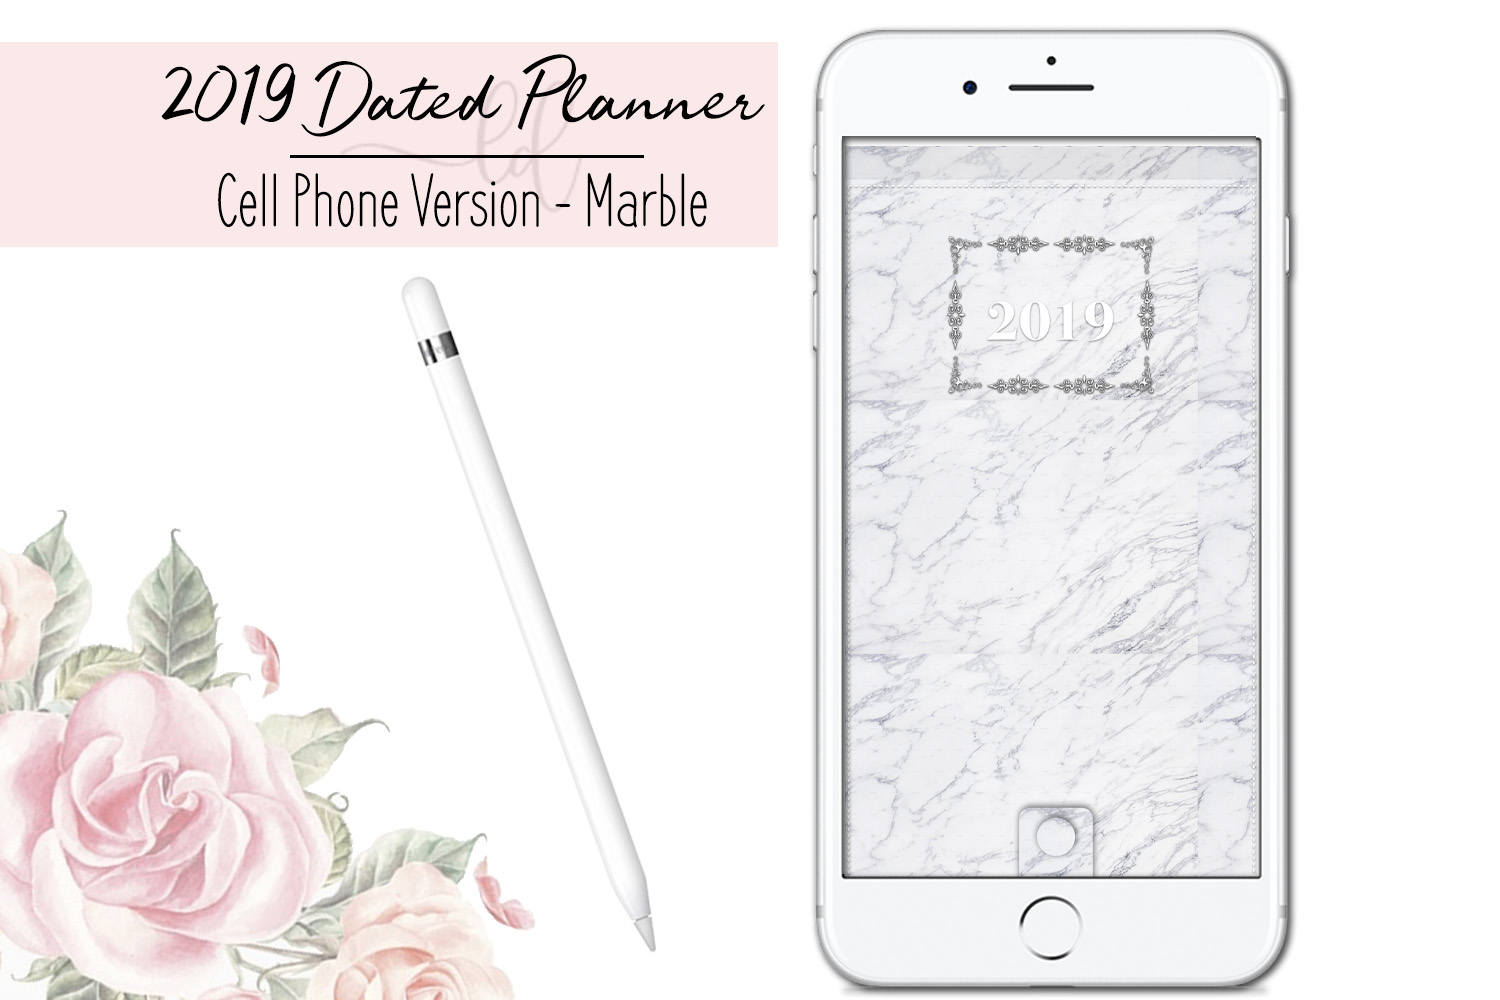 2019 Dated Digital Cell Phone Planner by Leni Digitals